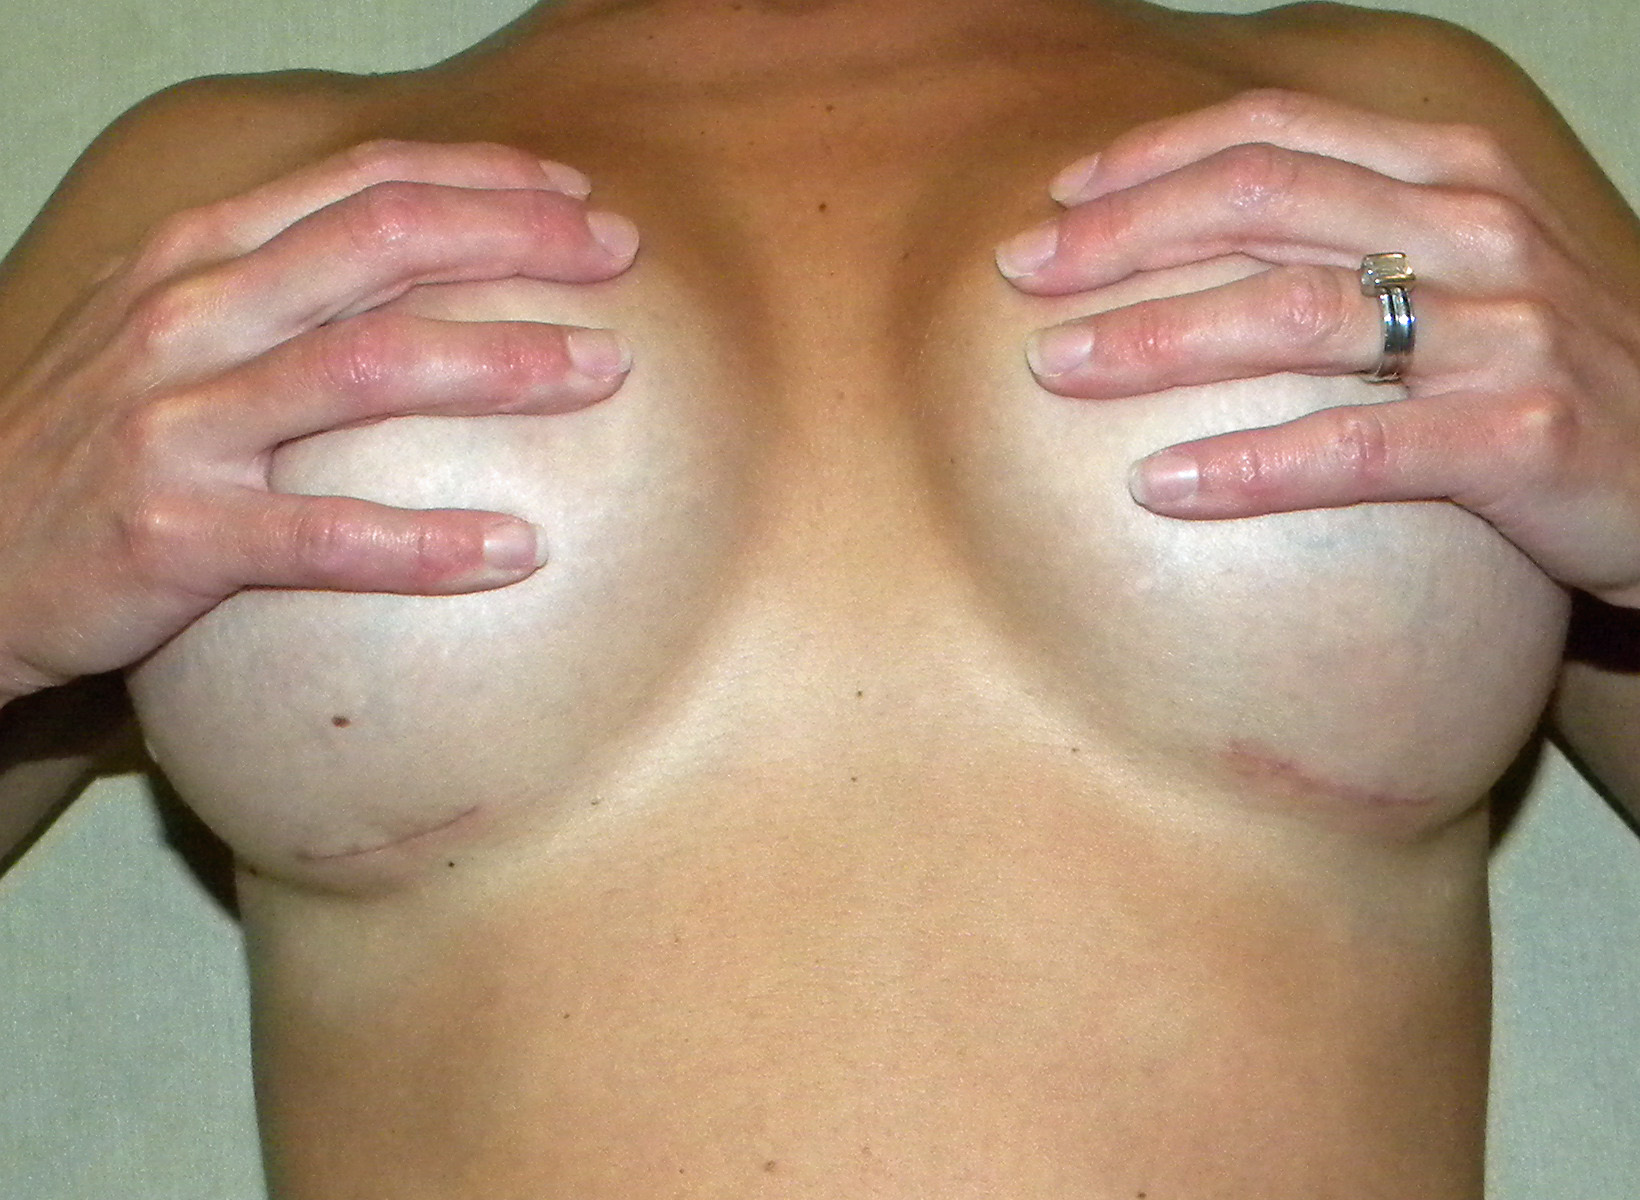 28 Mar 2011 Breast implant. or 600cc breast implants, you can use breast im